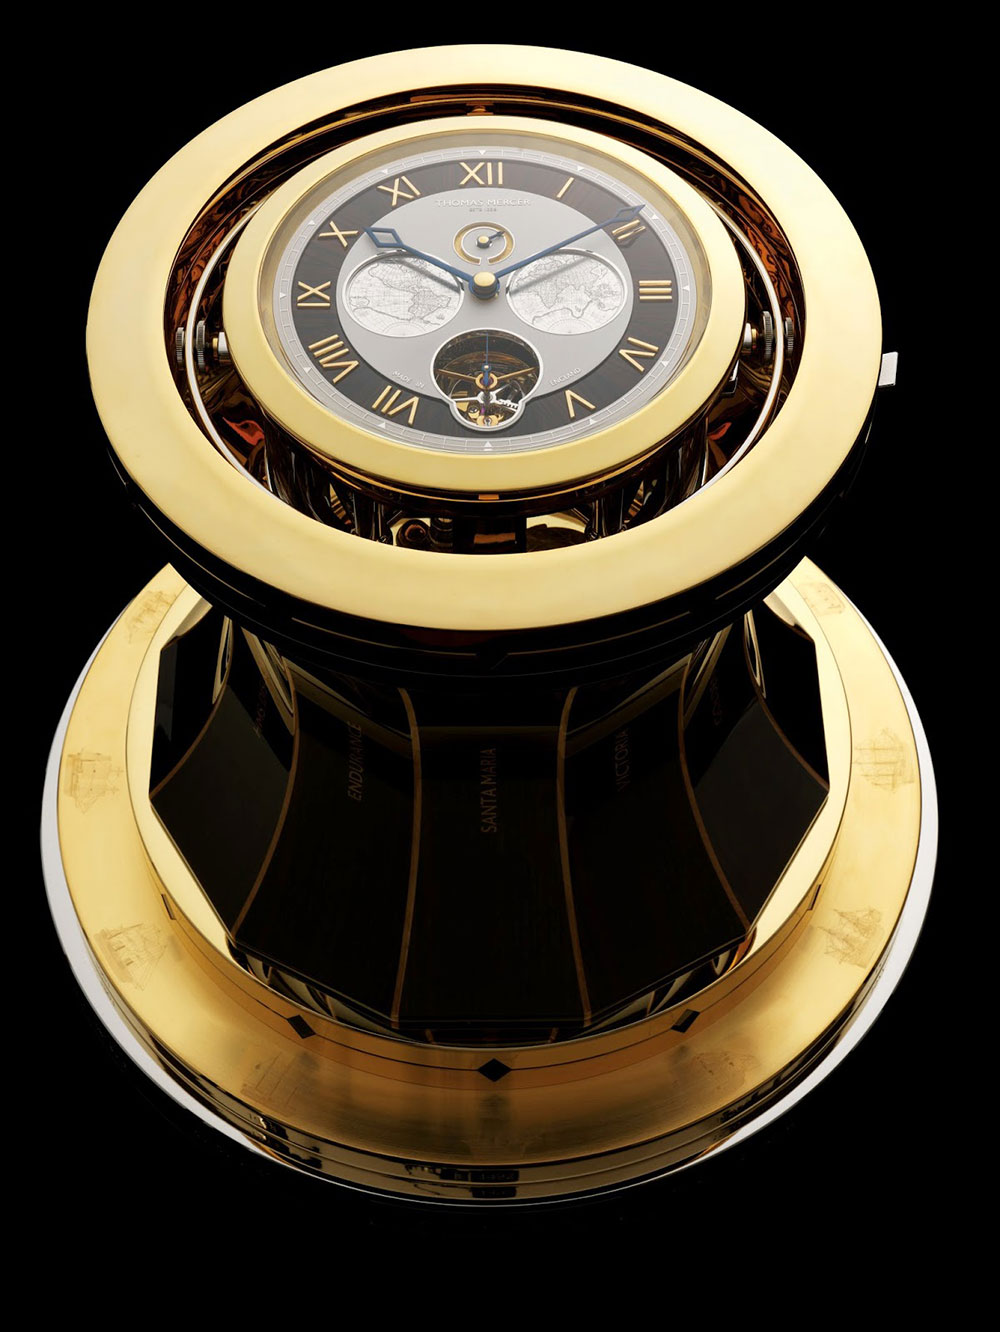 Boating Christmas gift ideas: Thomas Mercer chronometer